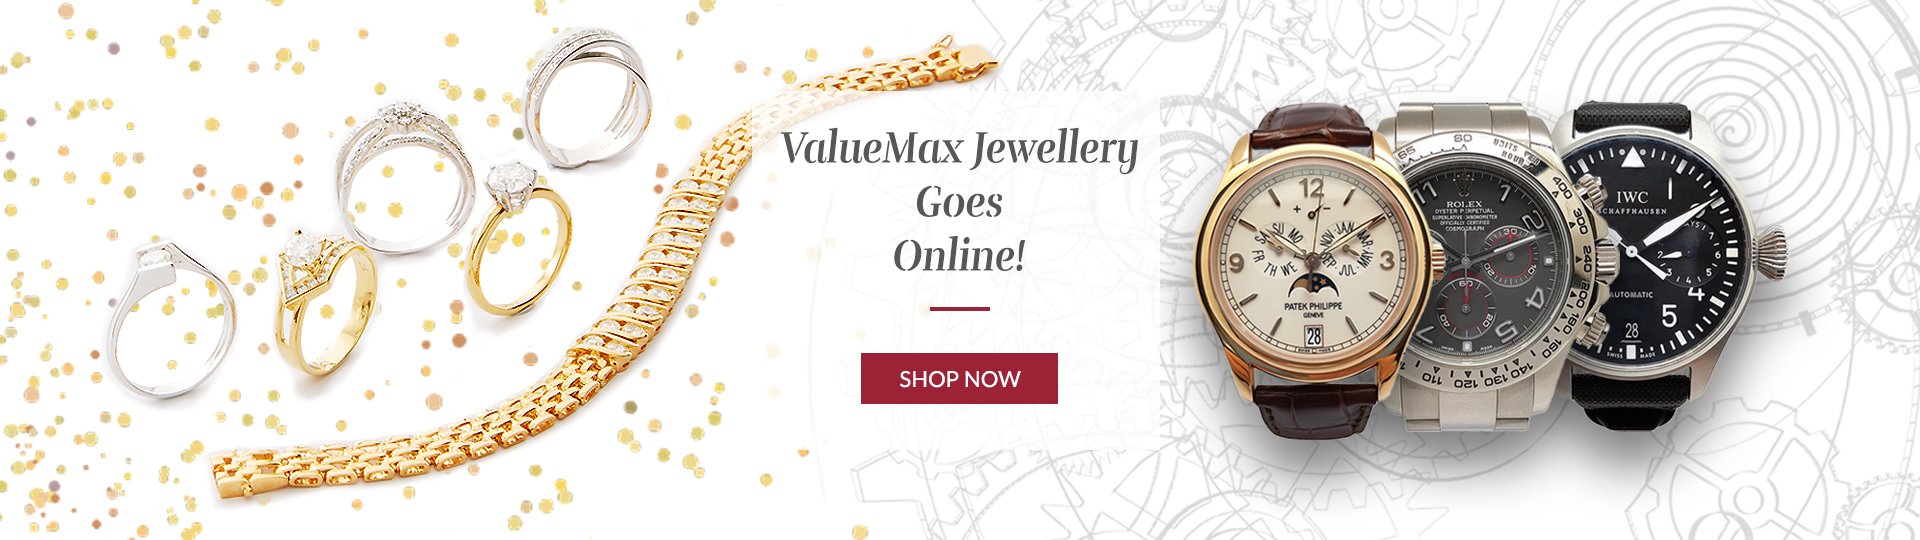 jewelry & timepiece online shop valuemax